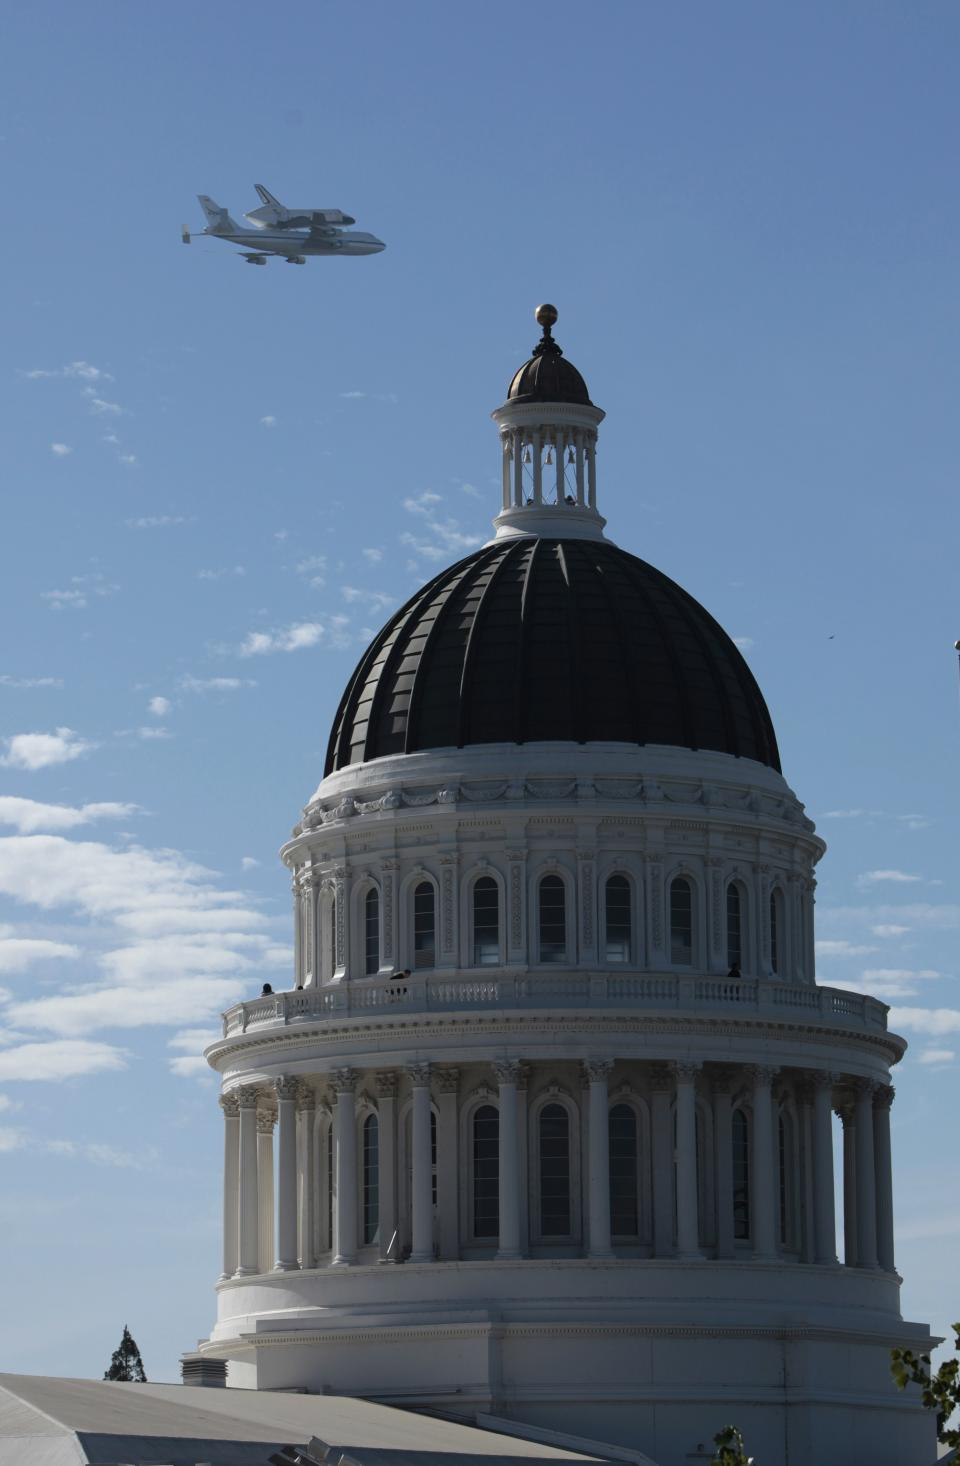 The space shuttle Endeavour passes over the California state Capitol, Friday, Sept. 21, 2012,  in Sacramento, Calif. Endeavour is making a final trek across the country to the California Science Center in Los Angeles, where it will be permanently displayed.(AP Photo/Rich Pedroncelli)